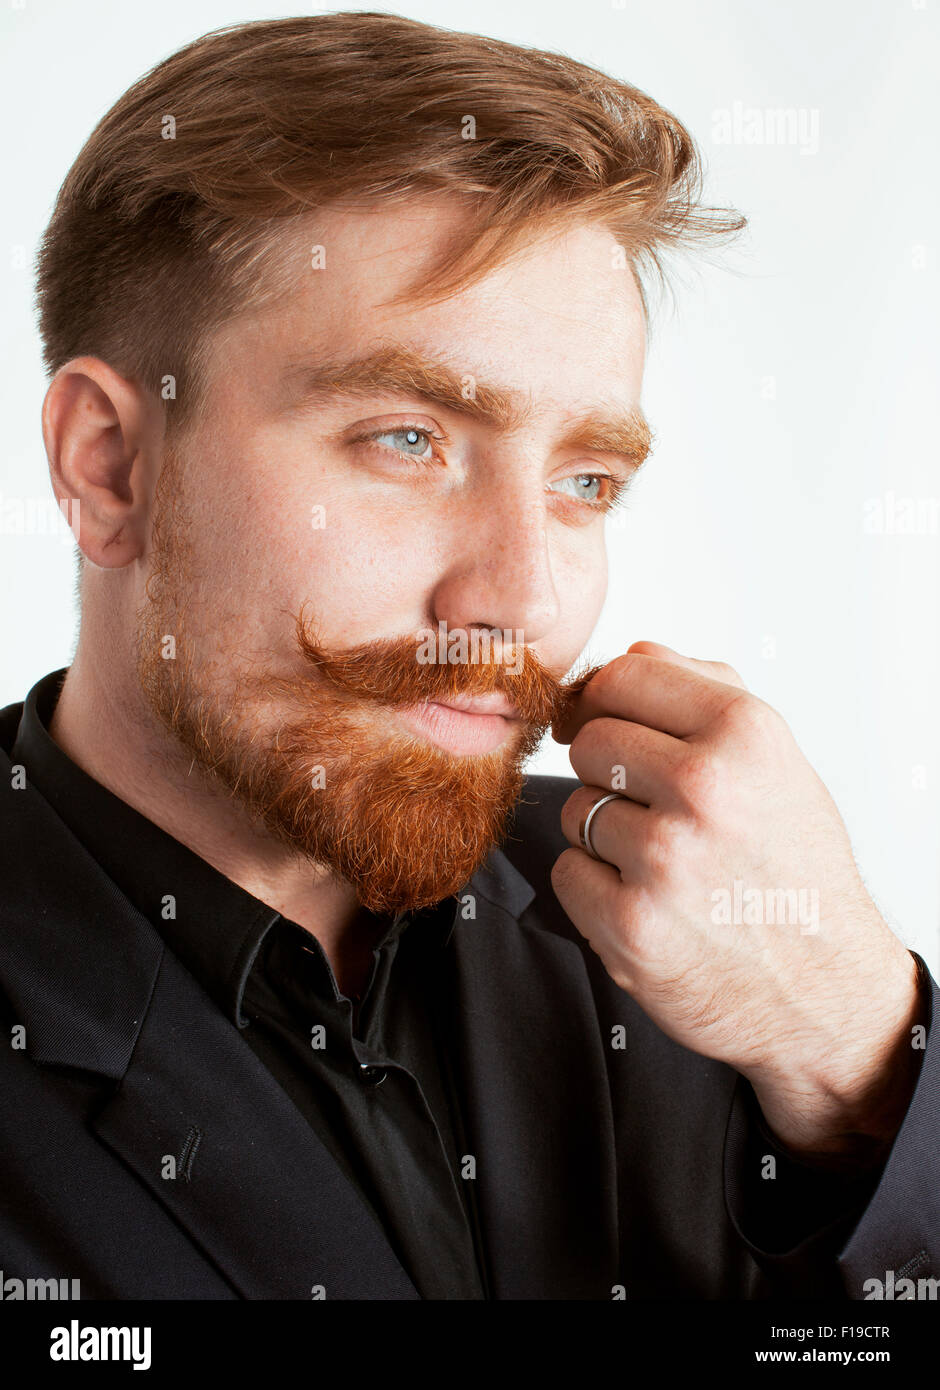 Young Red Hair Man With Beard And Mustache In Black Suit On White Stock Photo Alamy